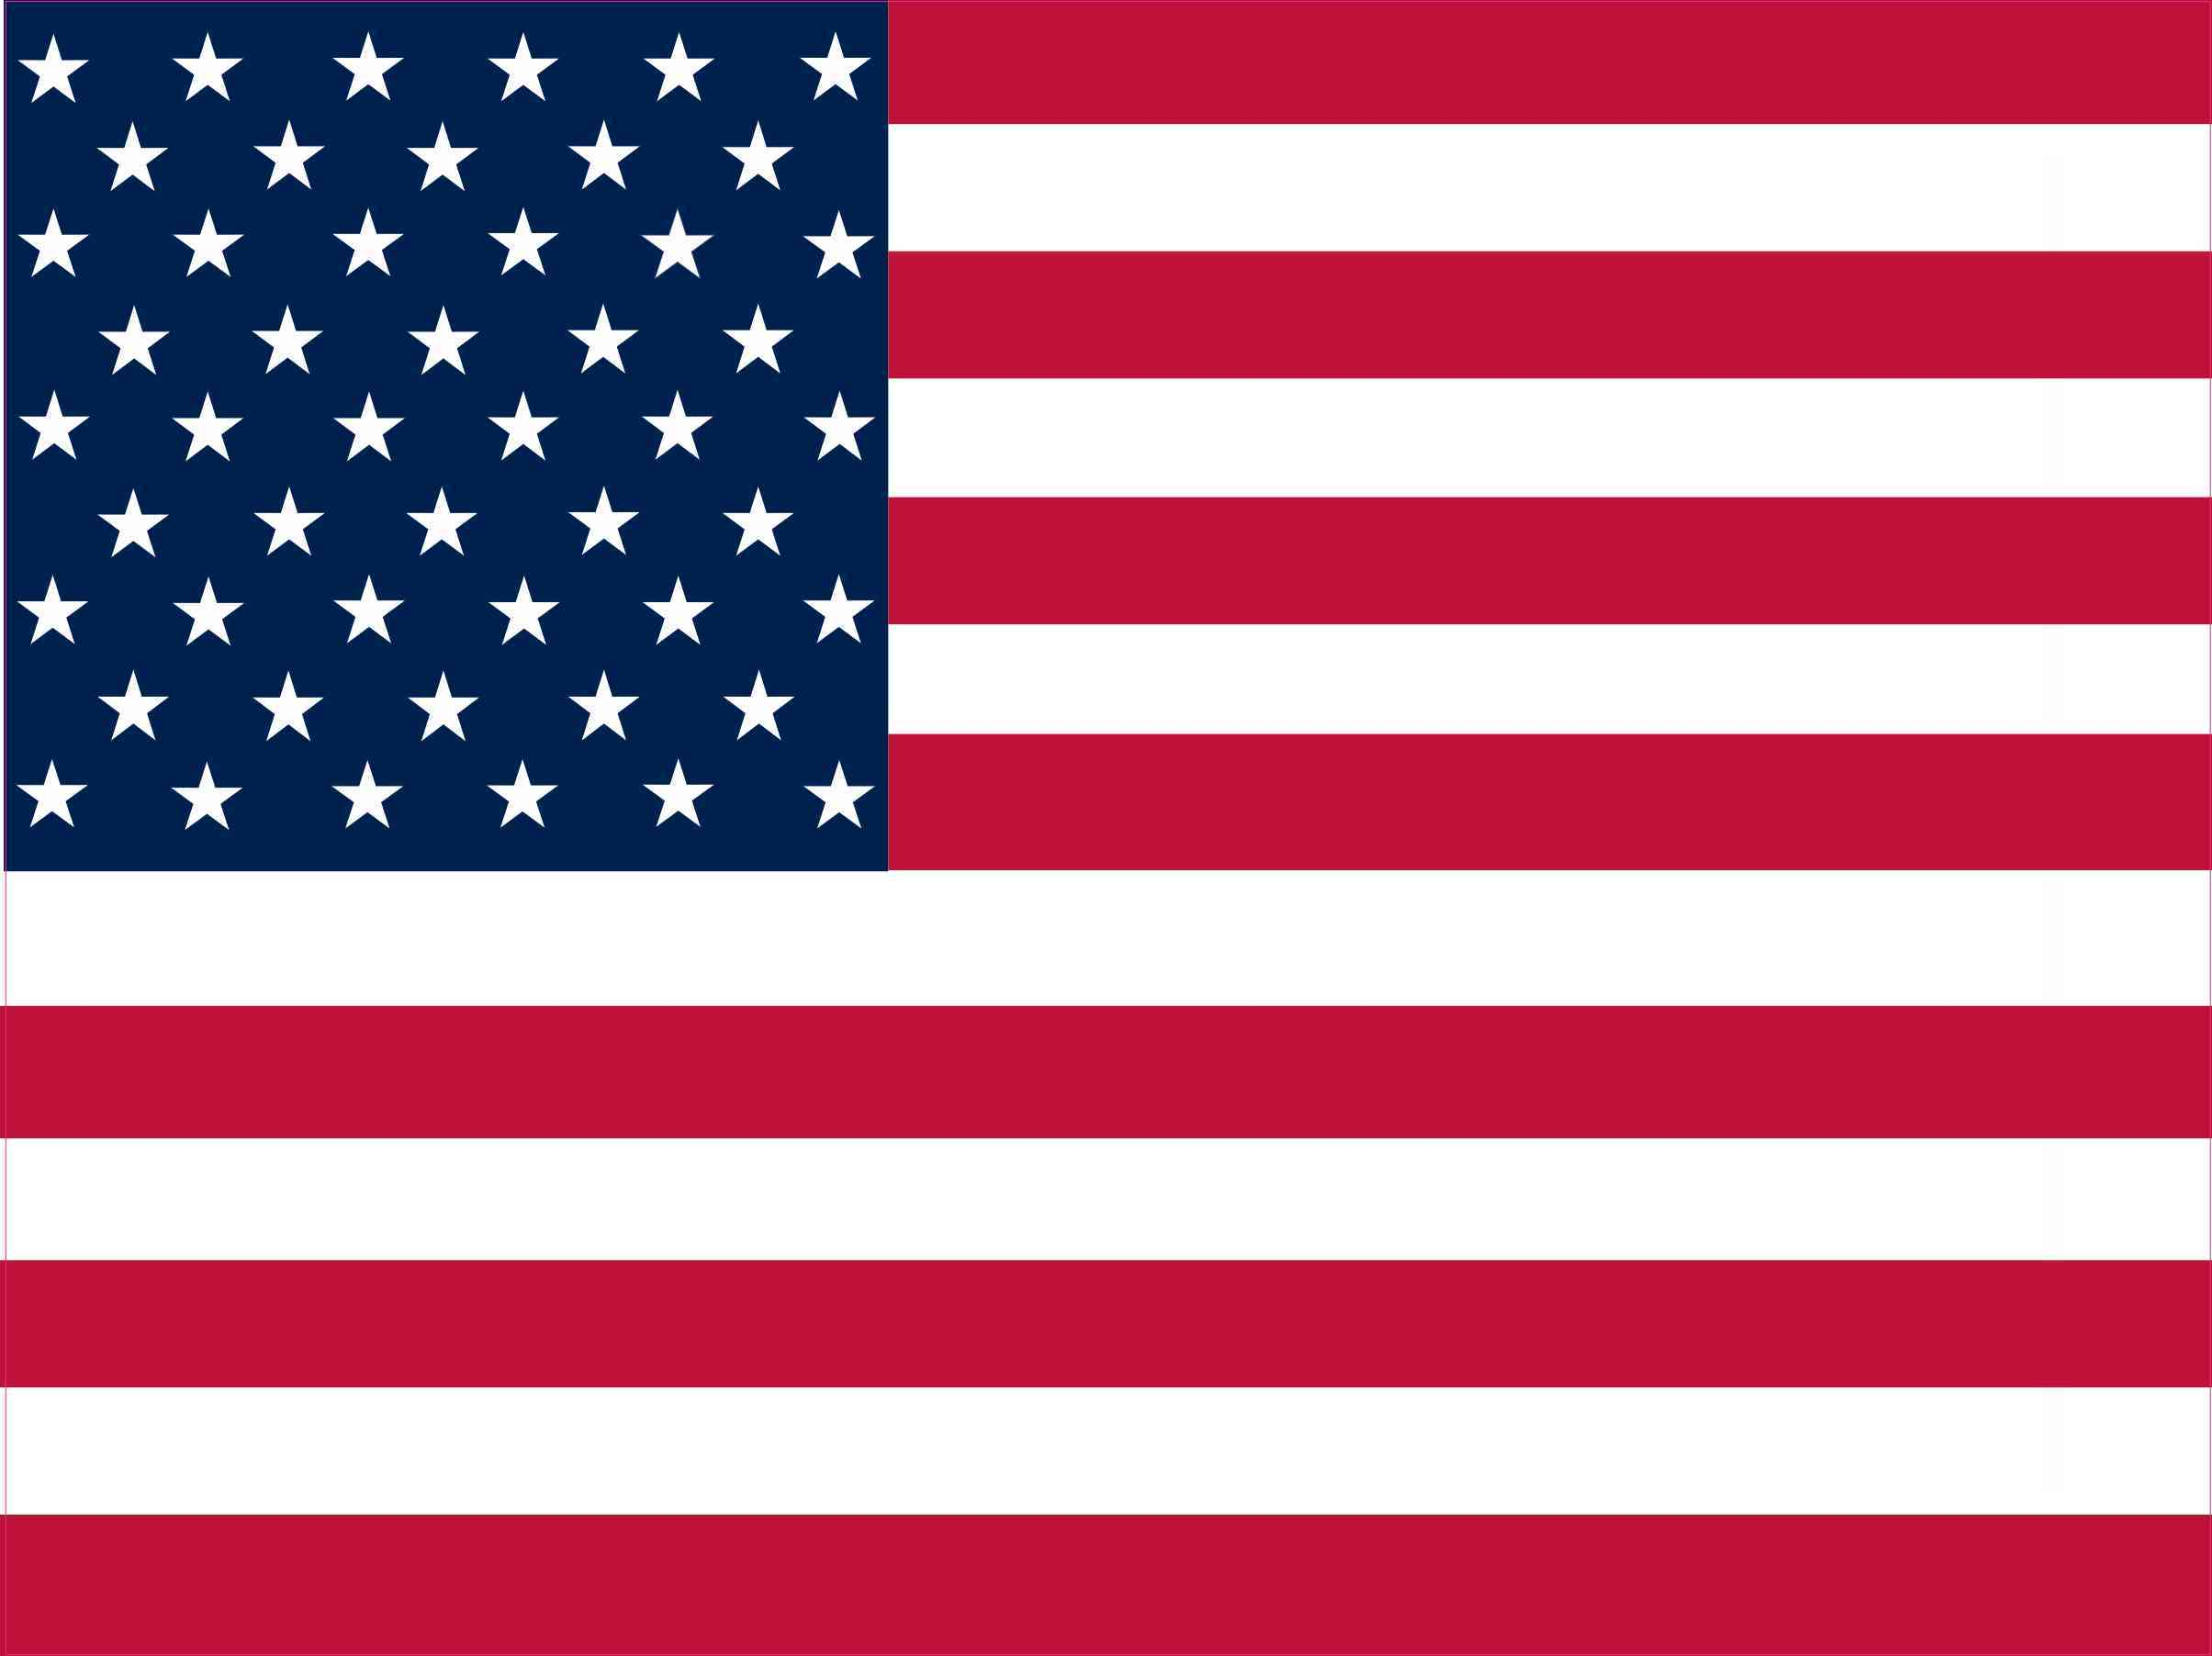 16in x 12in american flag sticker decal stickers window vinyl decals flags